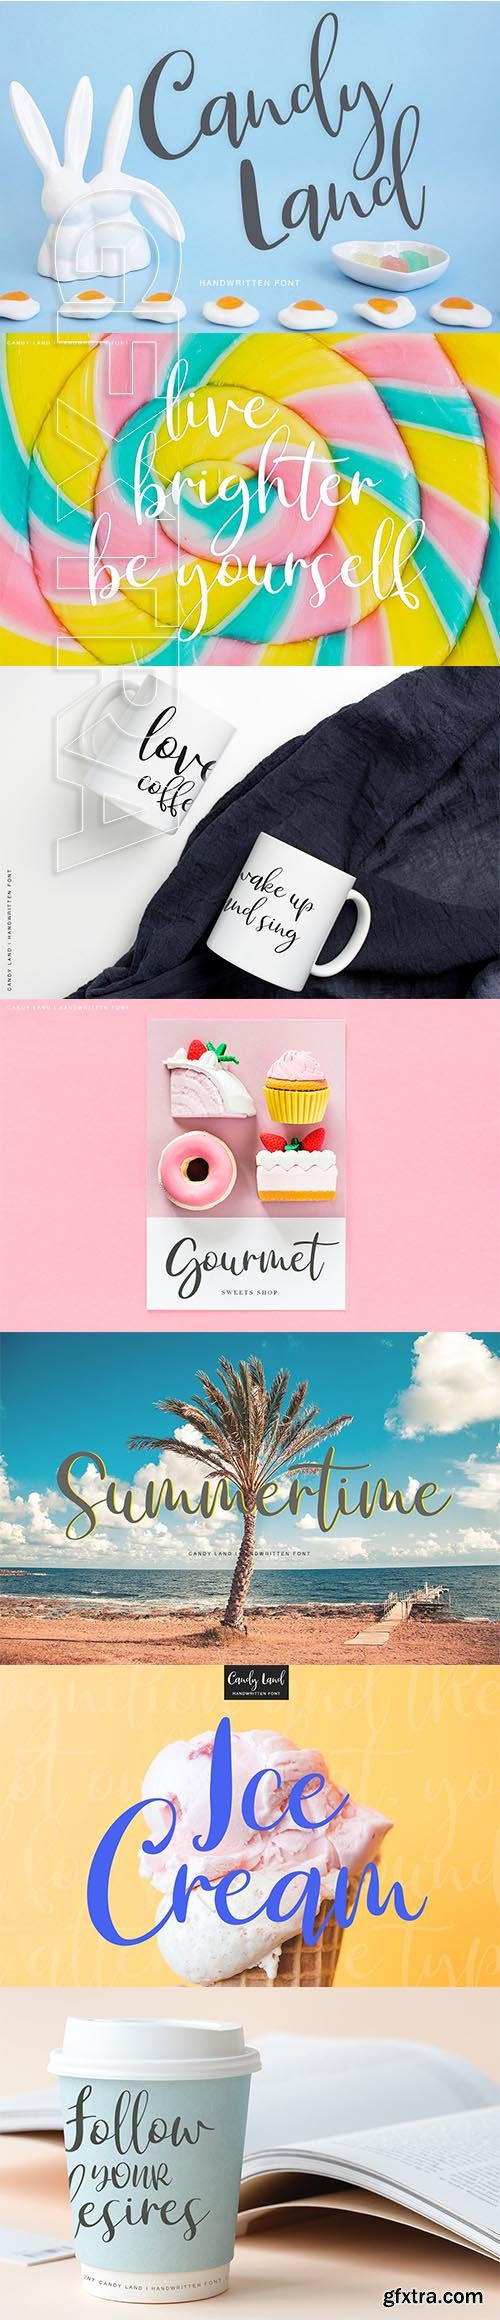 CreativeMarket - Candy Land 2739852